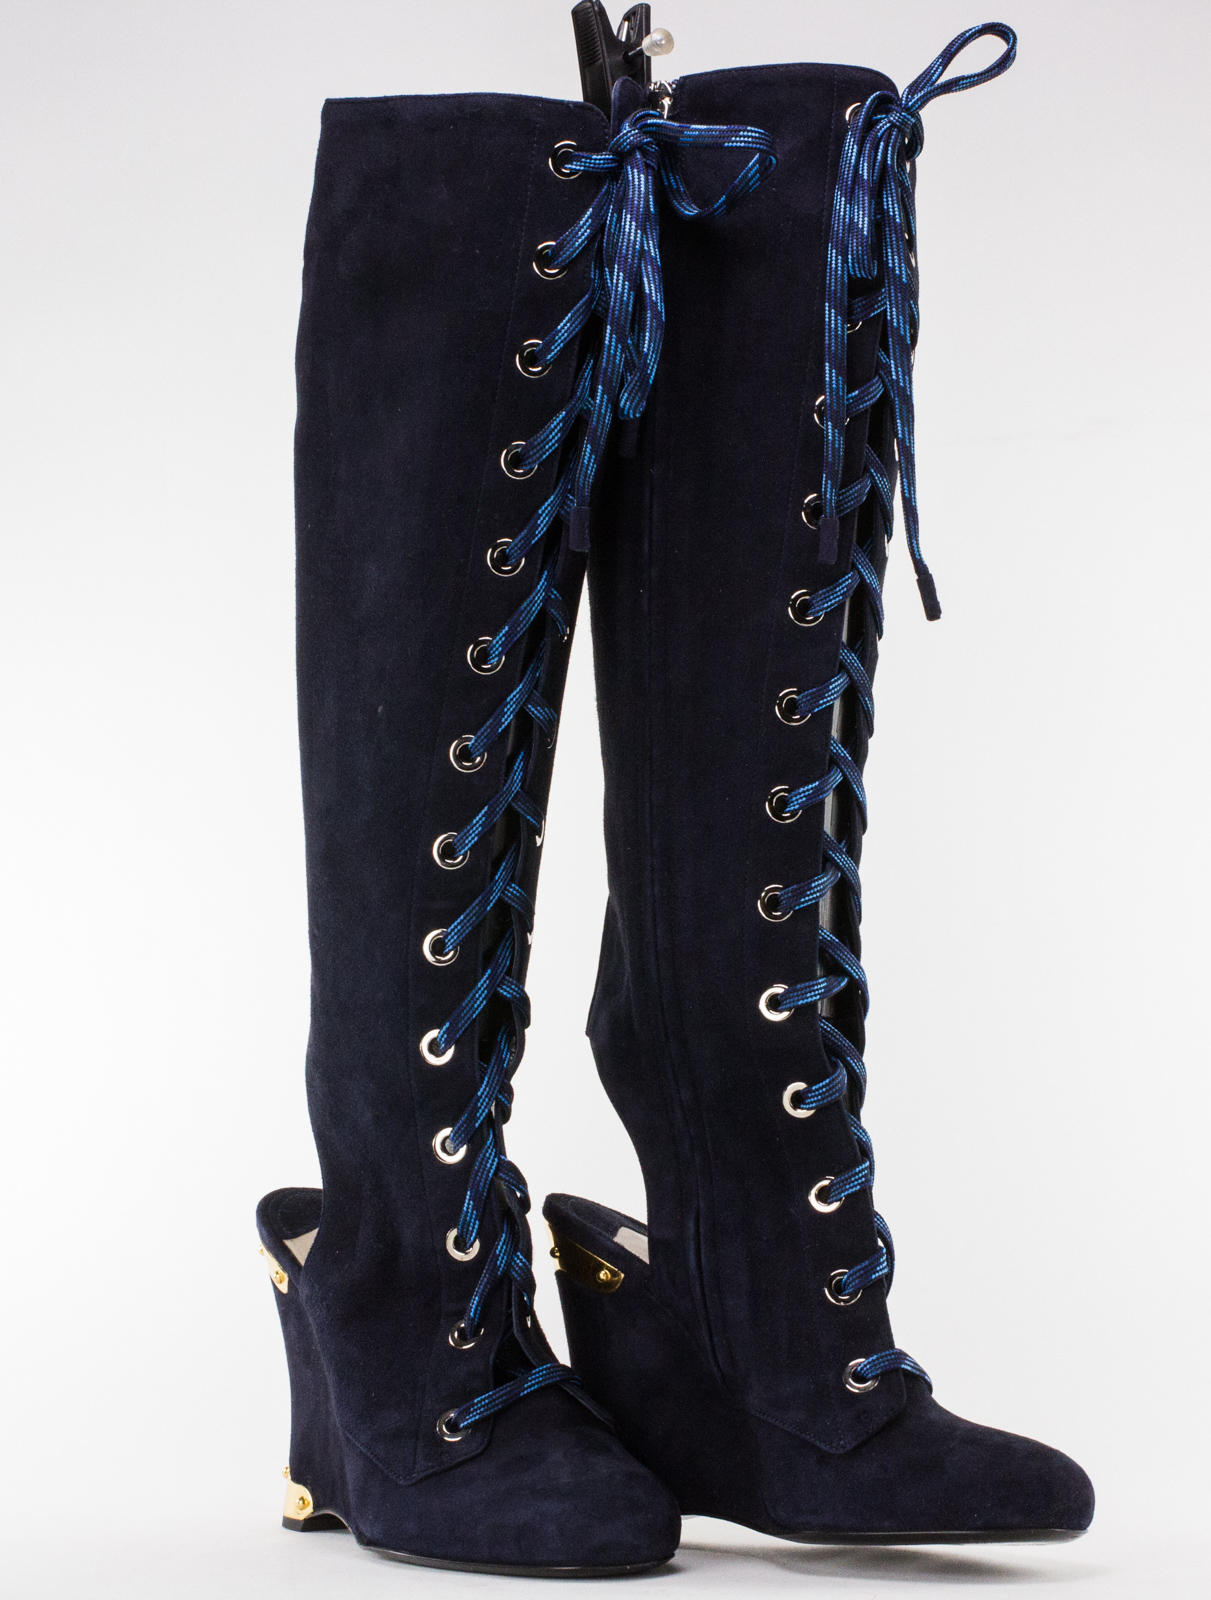 ecb43a0a Details about PRADA Navy Suede Lace up Knee High Boots